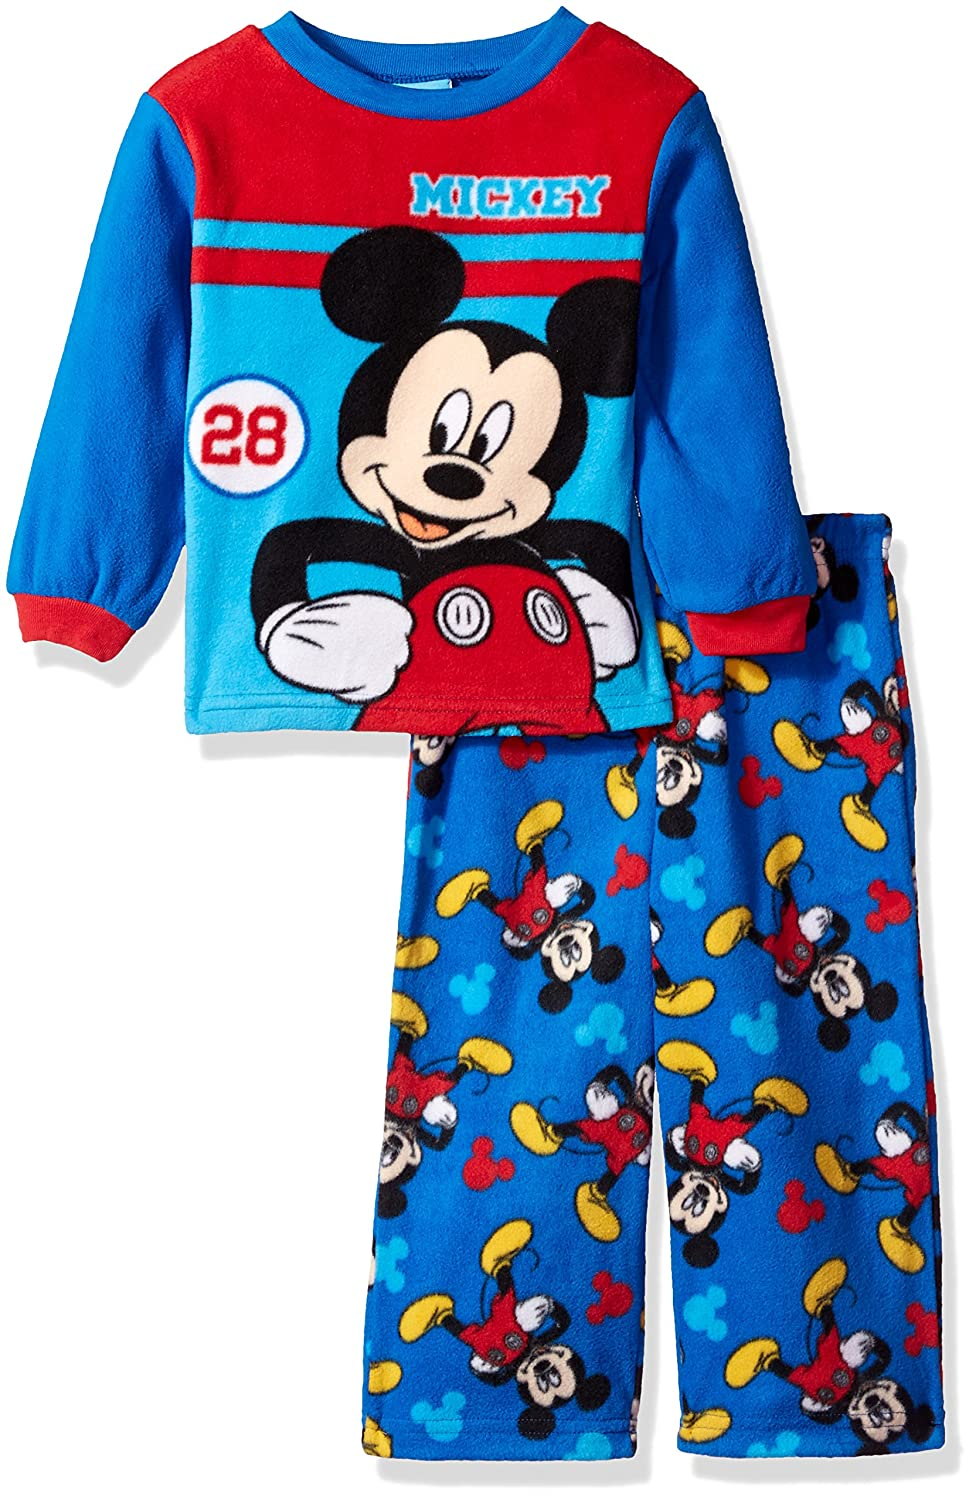 Disney Toddler Boys' Mickey Mouse 2 Piece Fleece Pajama Set